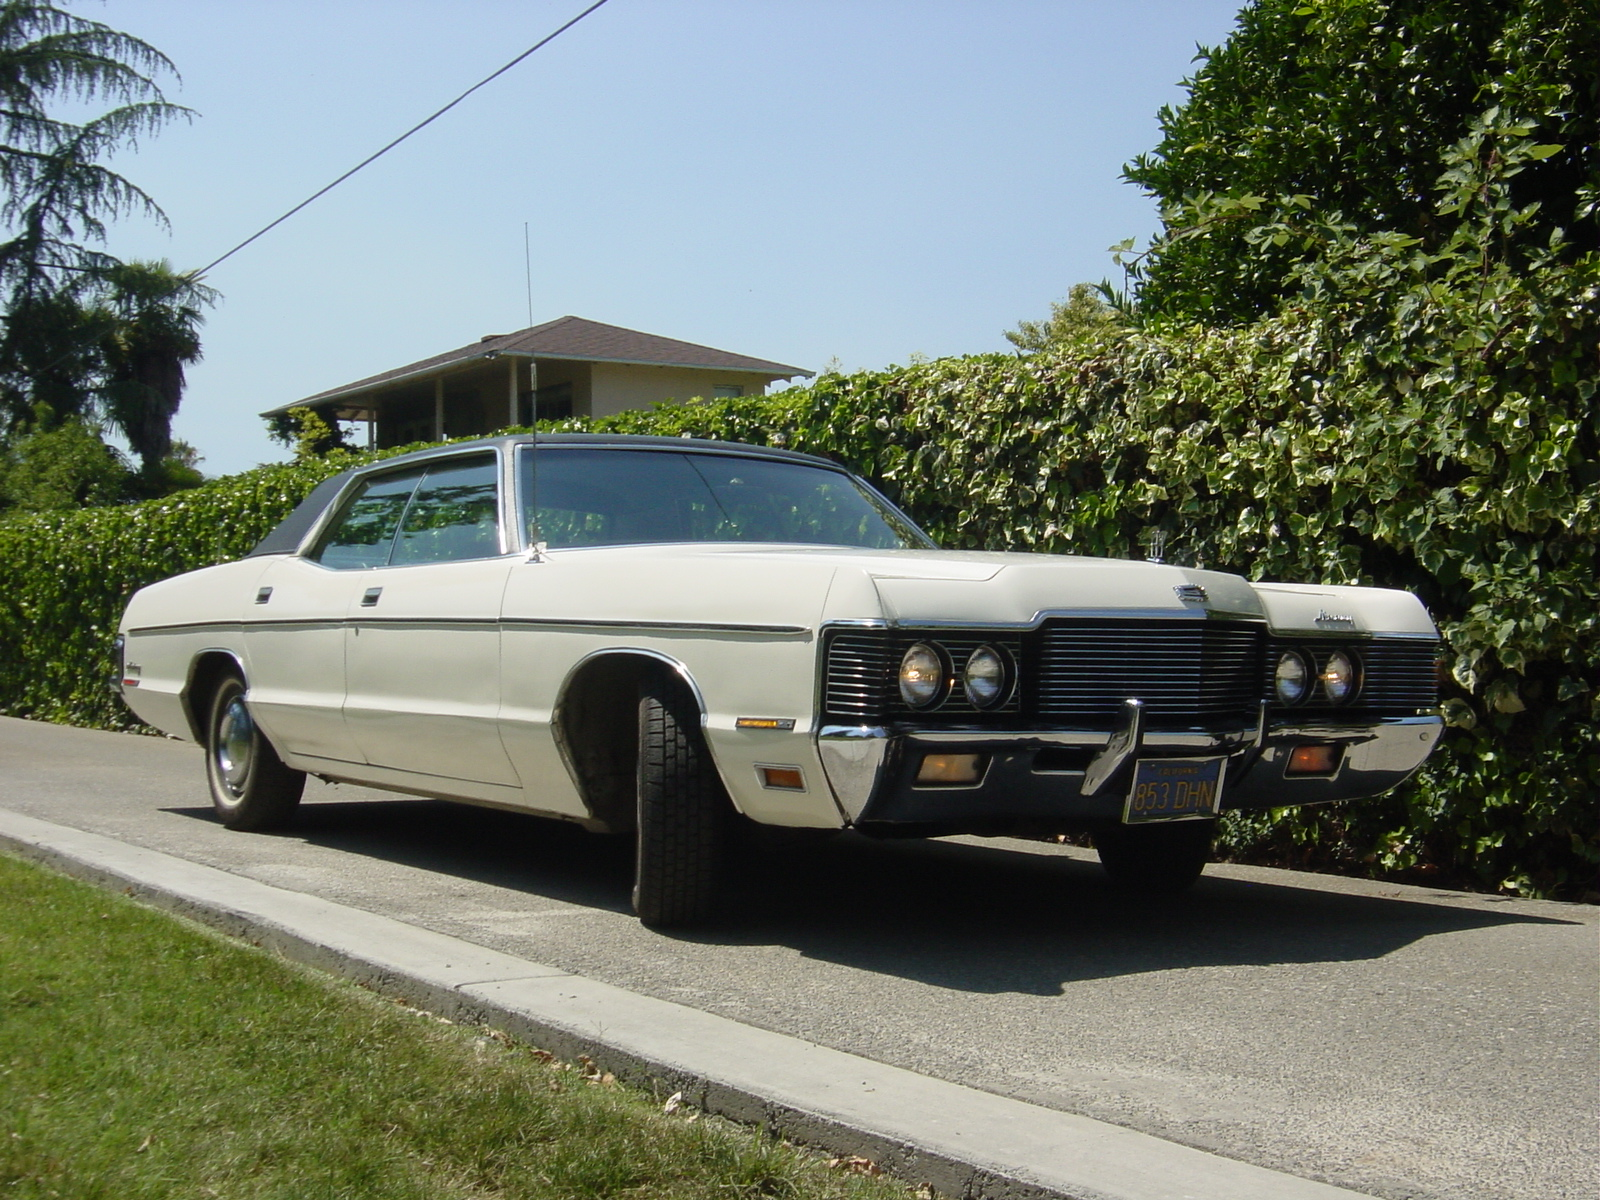 1971 Mercury Monterey picture